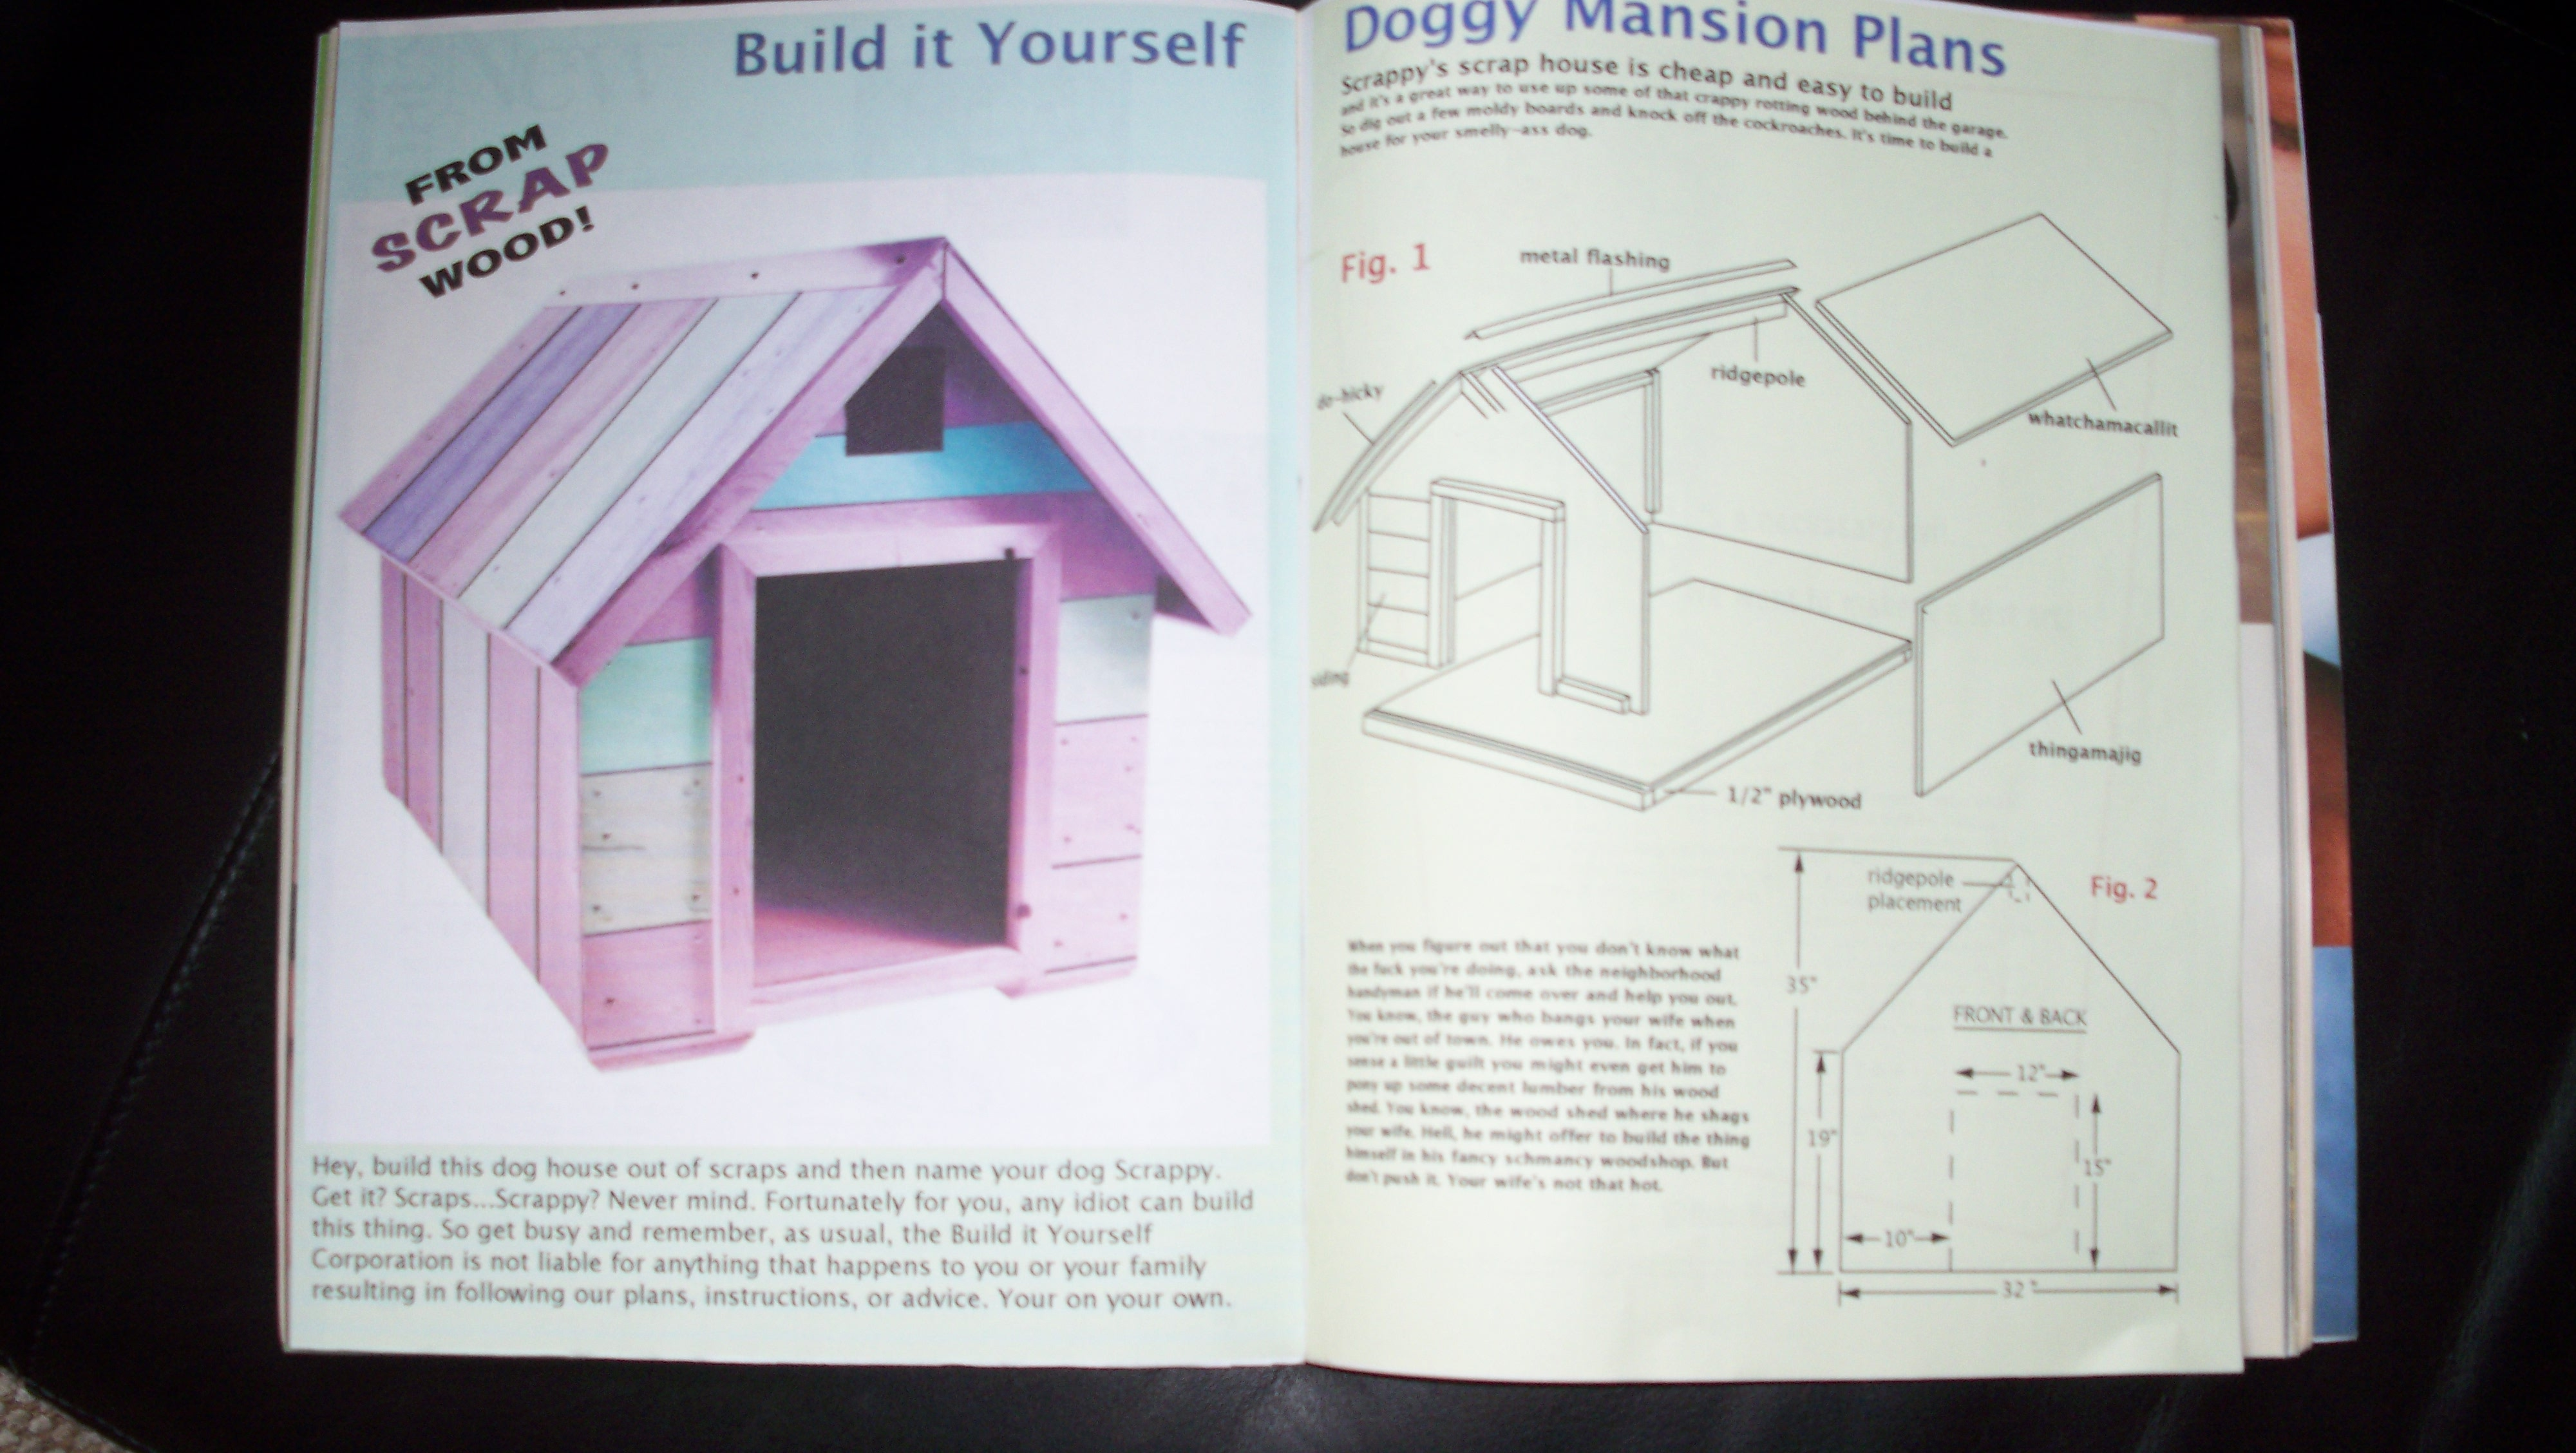 Abrupt photo of rescue dogs for Dog house plans pdf